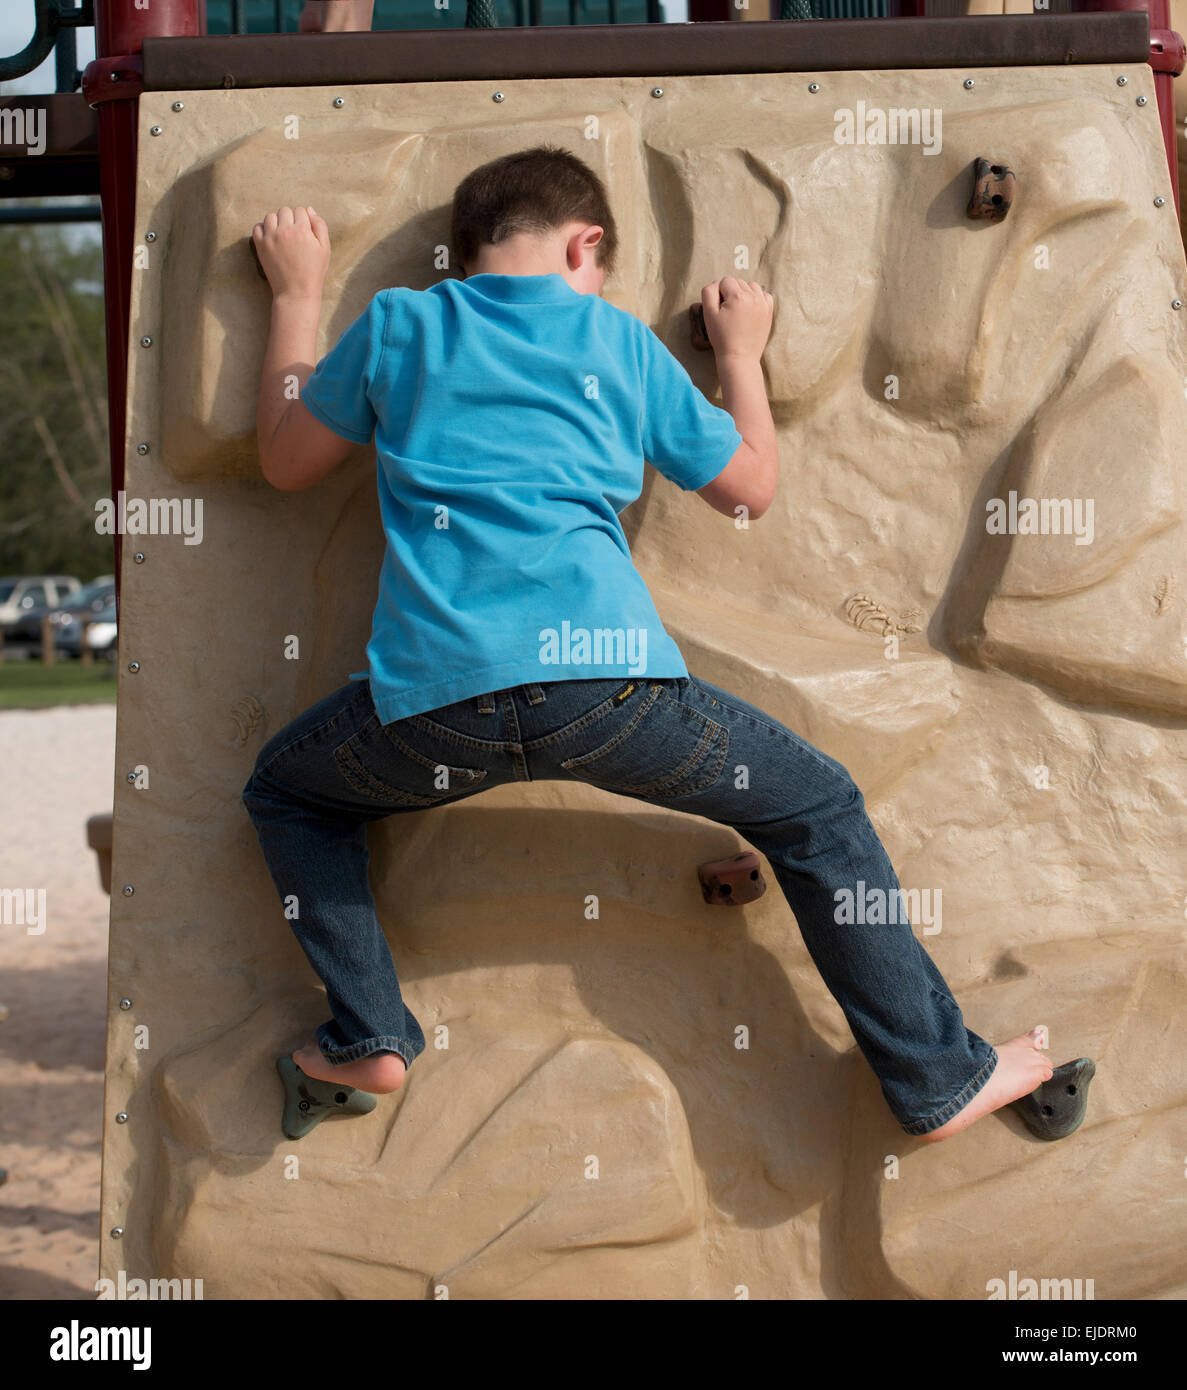 Eight year old boy climbing rock wall at park playground - Stock Image